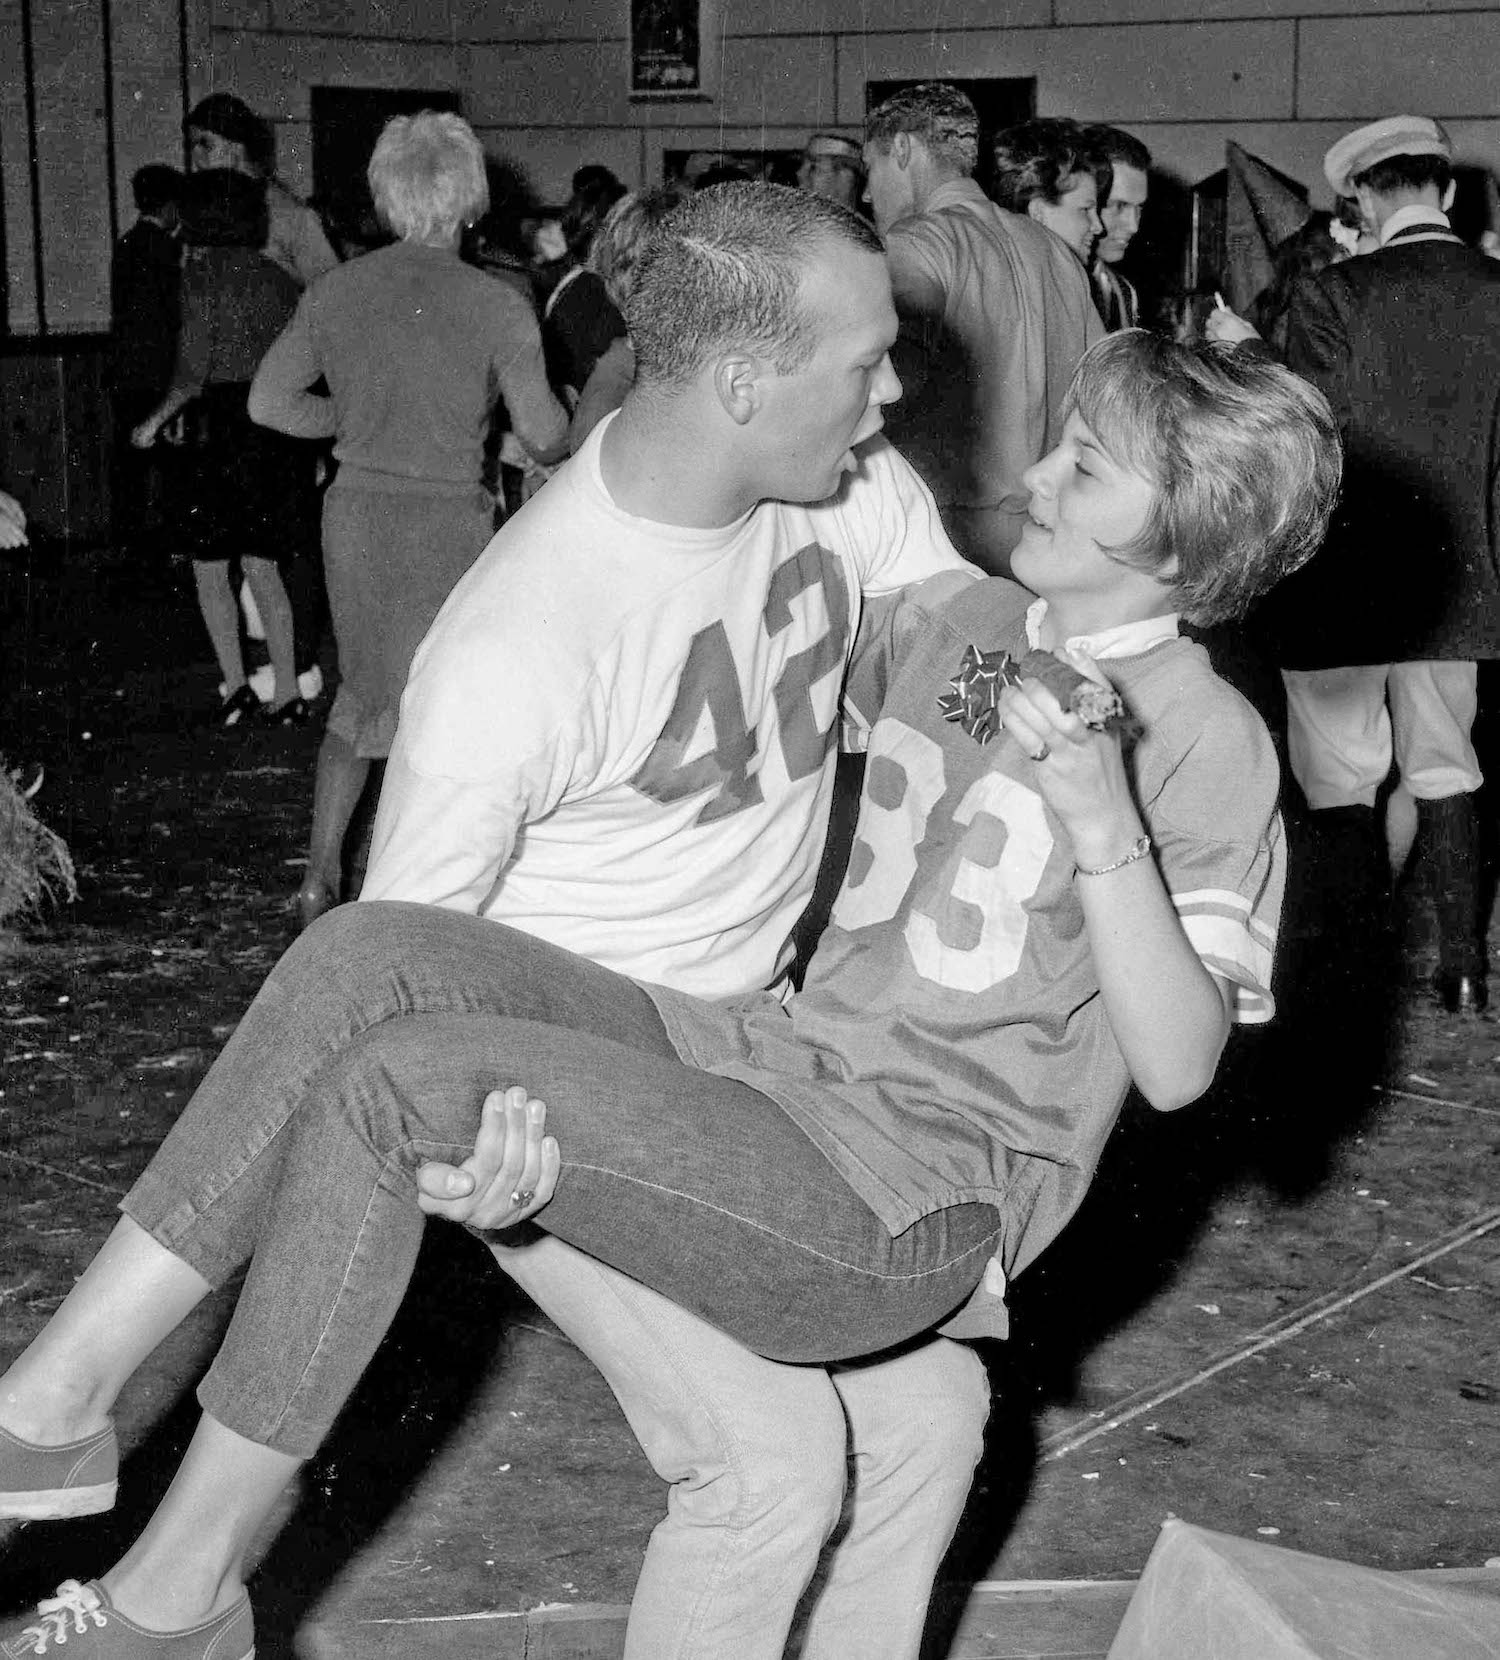 Fresno State College, Dec 13, 1963, costume party, Paul & Bunny